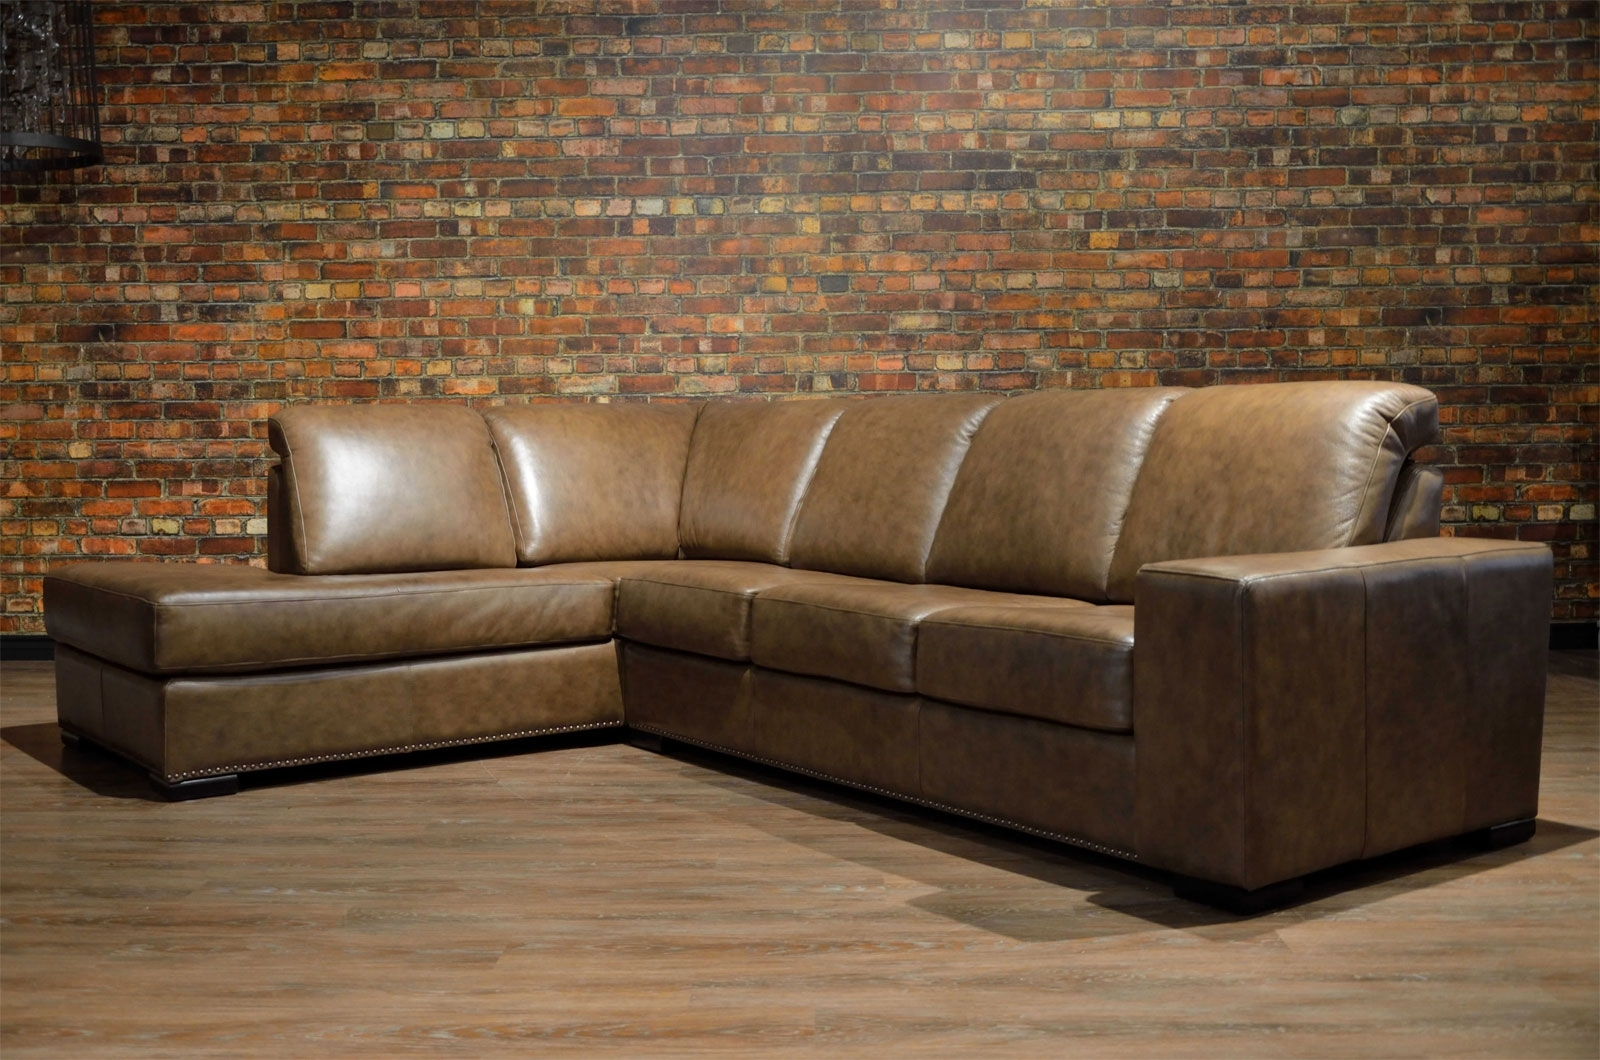 Preferred Leather Sofa (View 13 of 15)